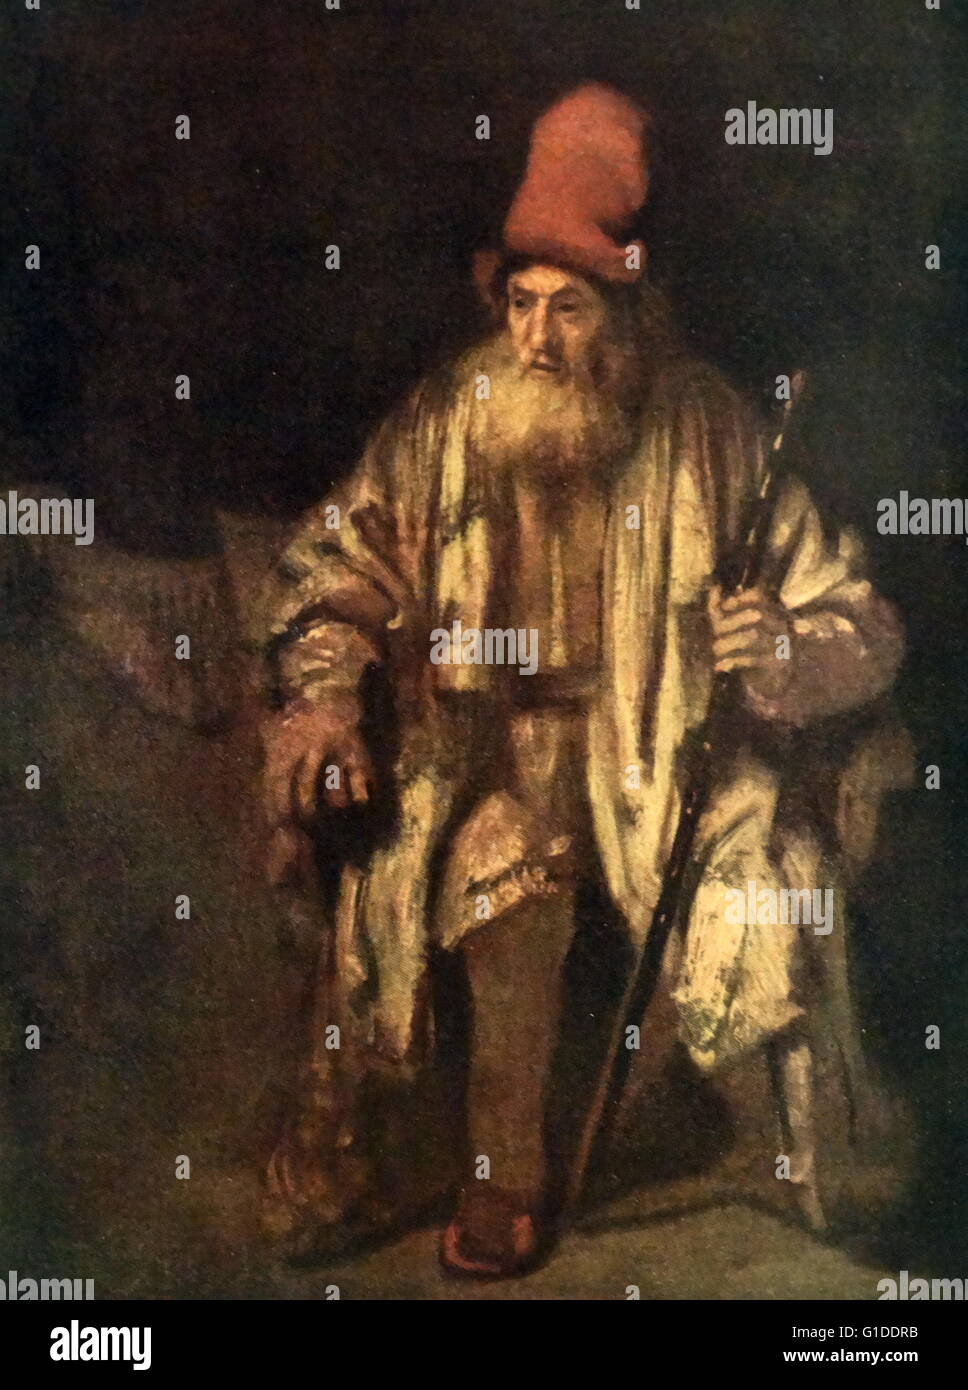 ZWPT1037 An old man with a warm hat handmade painted oil painting art on Canvas